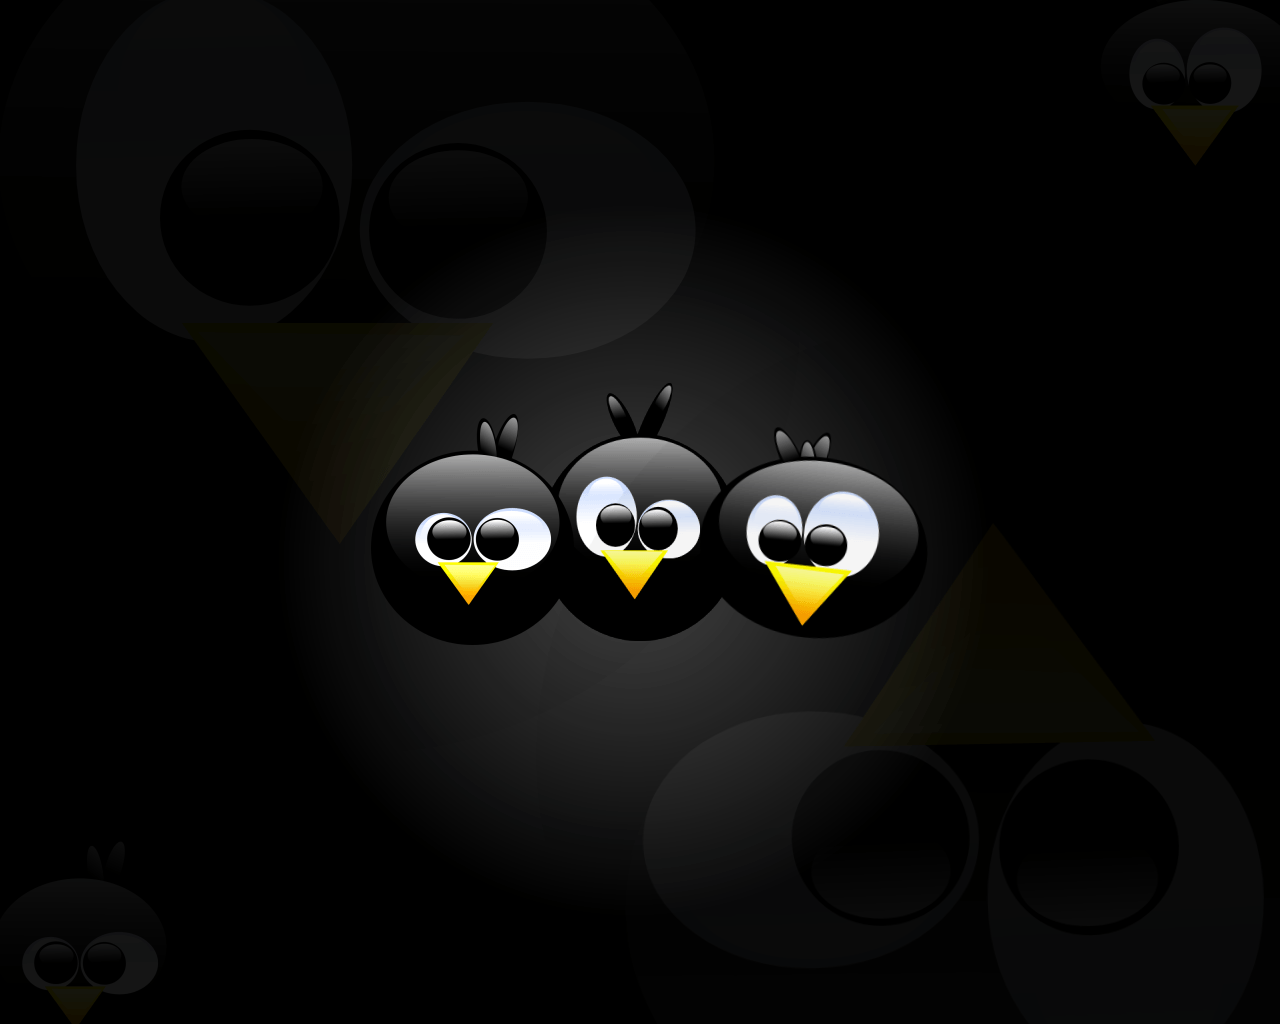 fight for linux wallpaper - photo #26